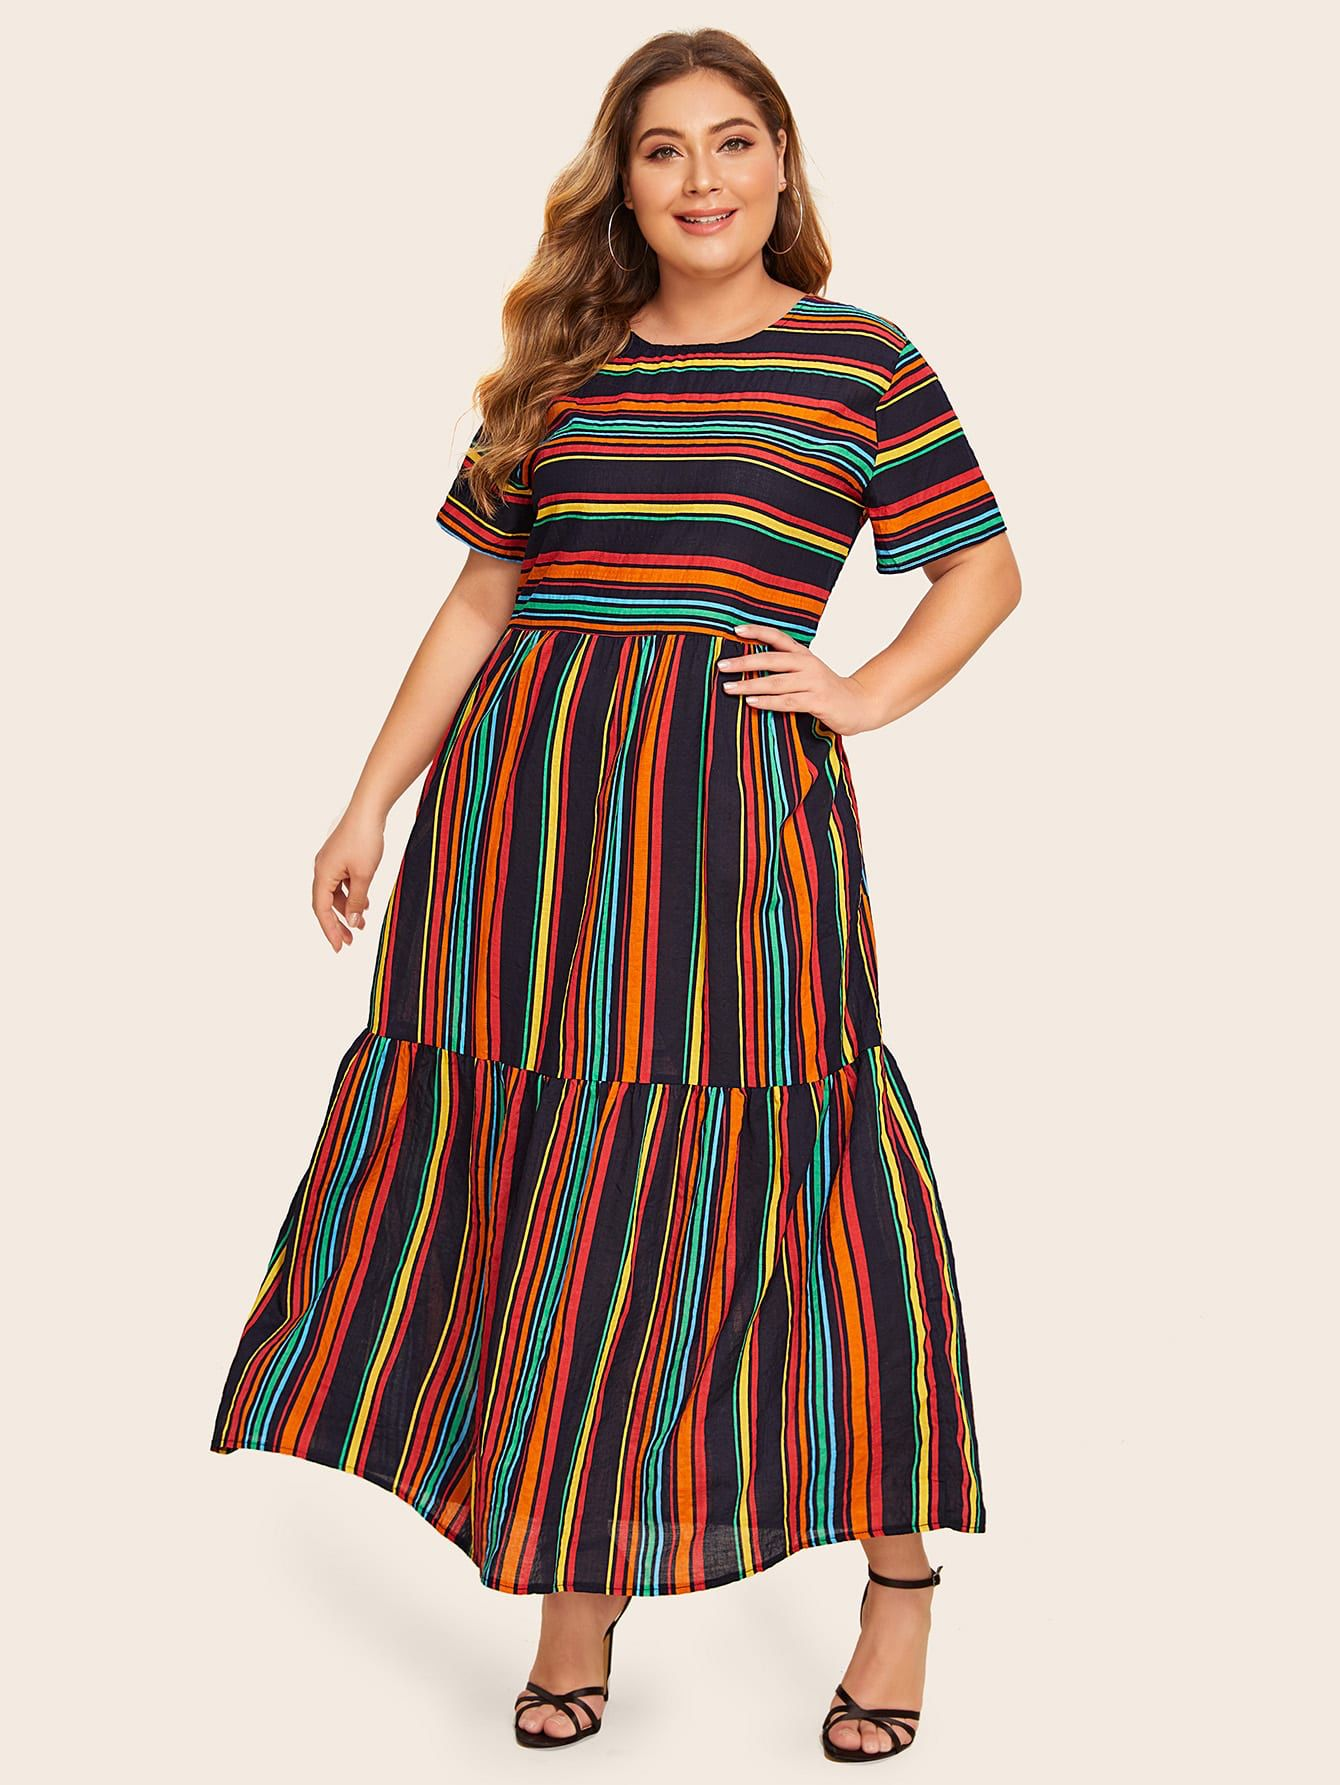 Plus Rainbow Striped Maxi Dress Check Out This Plus Rainbow Striped Maxi Dress On Shein And Explore More To Striped Maxi Dresses Maxi Dress Long Striped Dress [ 1785 x 1340 Pixel ]